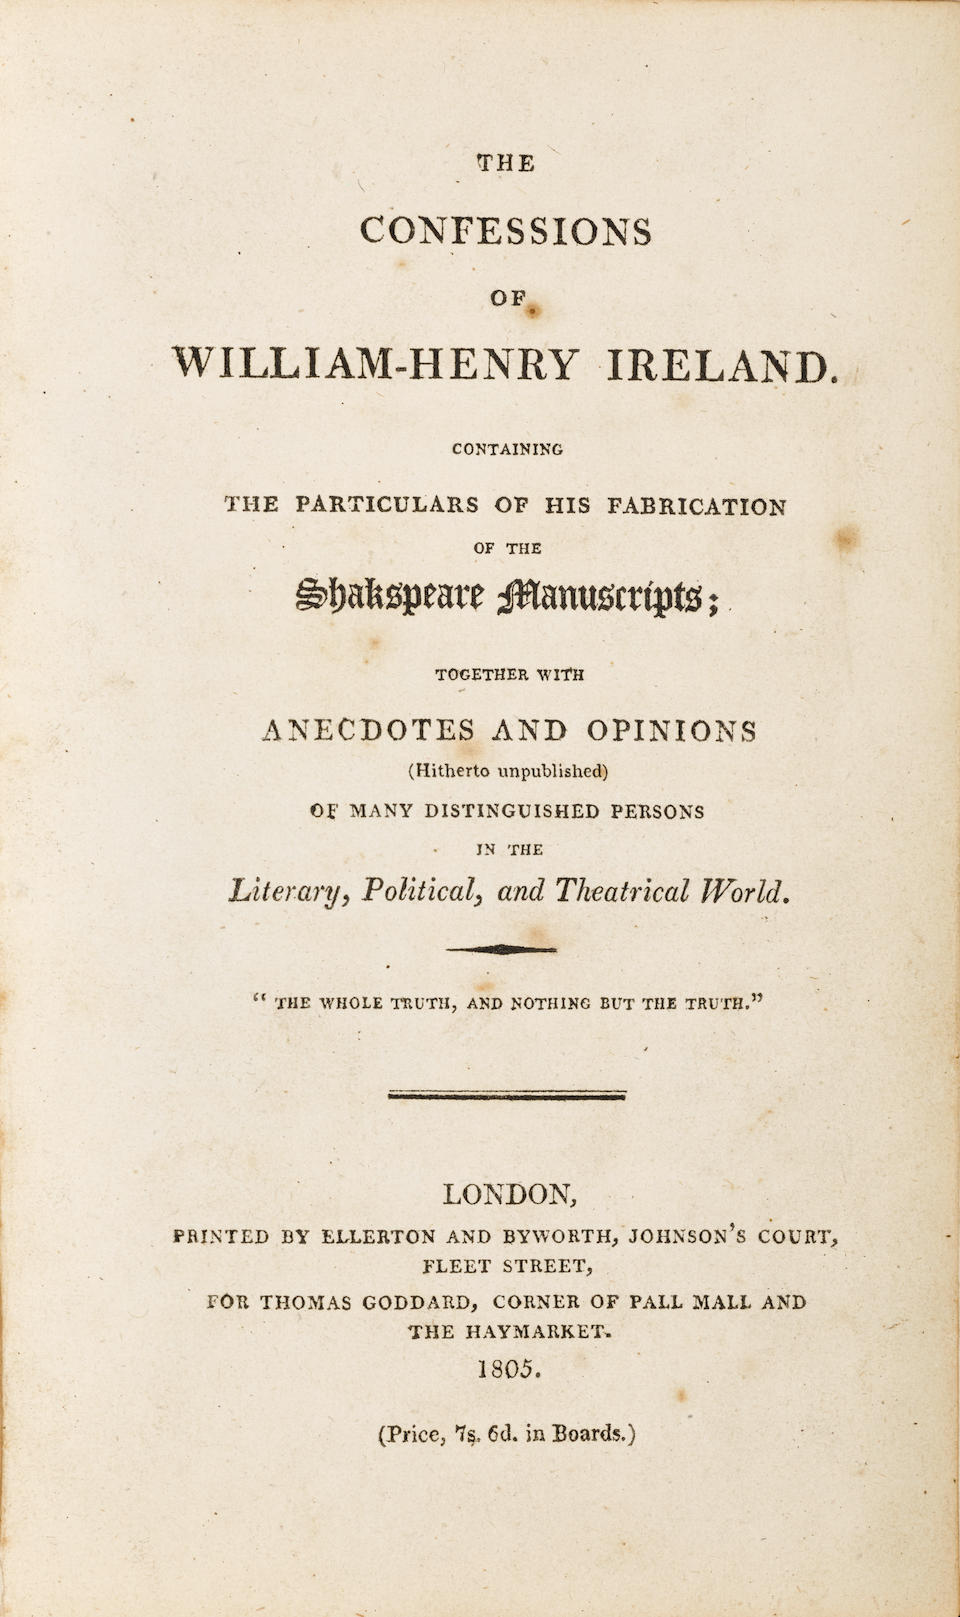 SHAKESPEAREAN FORGERIES. [IRELAND, WILLIAM HENRY. 1775-1835.] The Confessions of William Henry Ireland. London: Ellerton & Byworth, 1805.